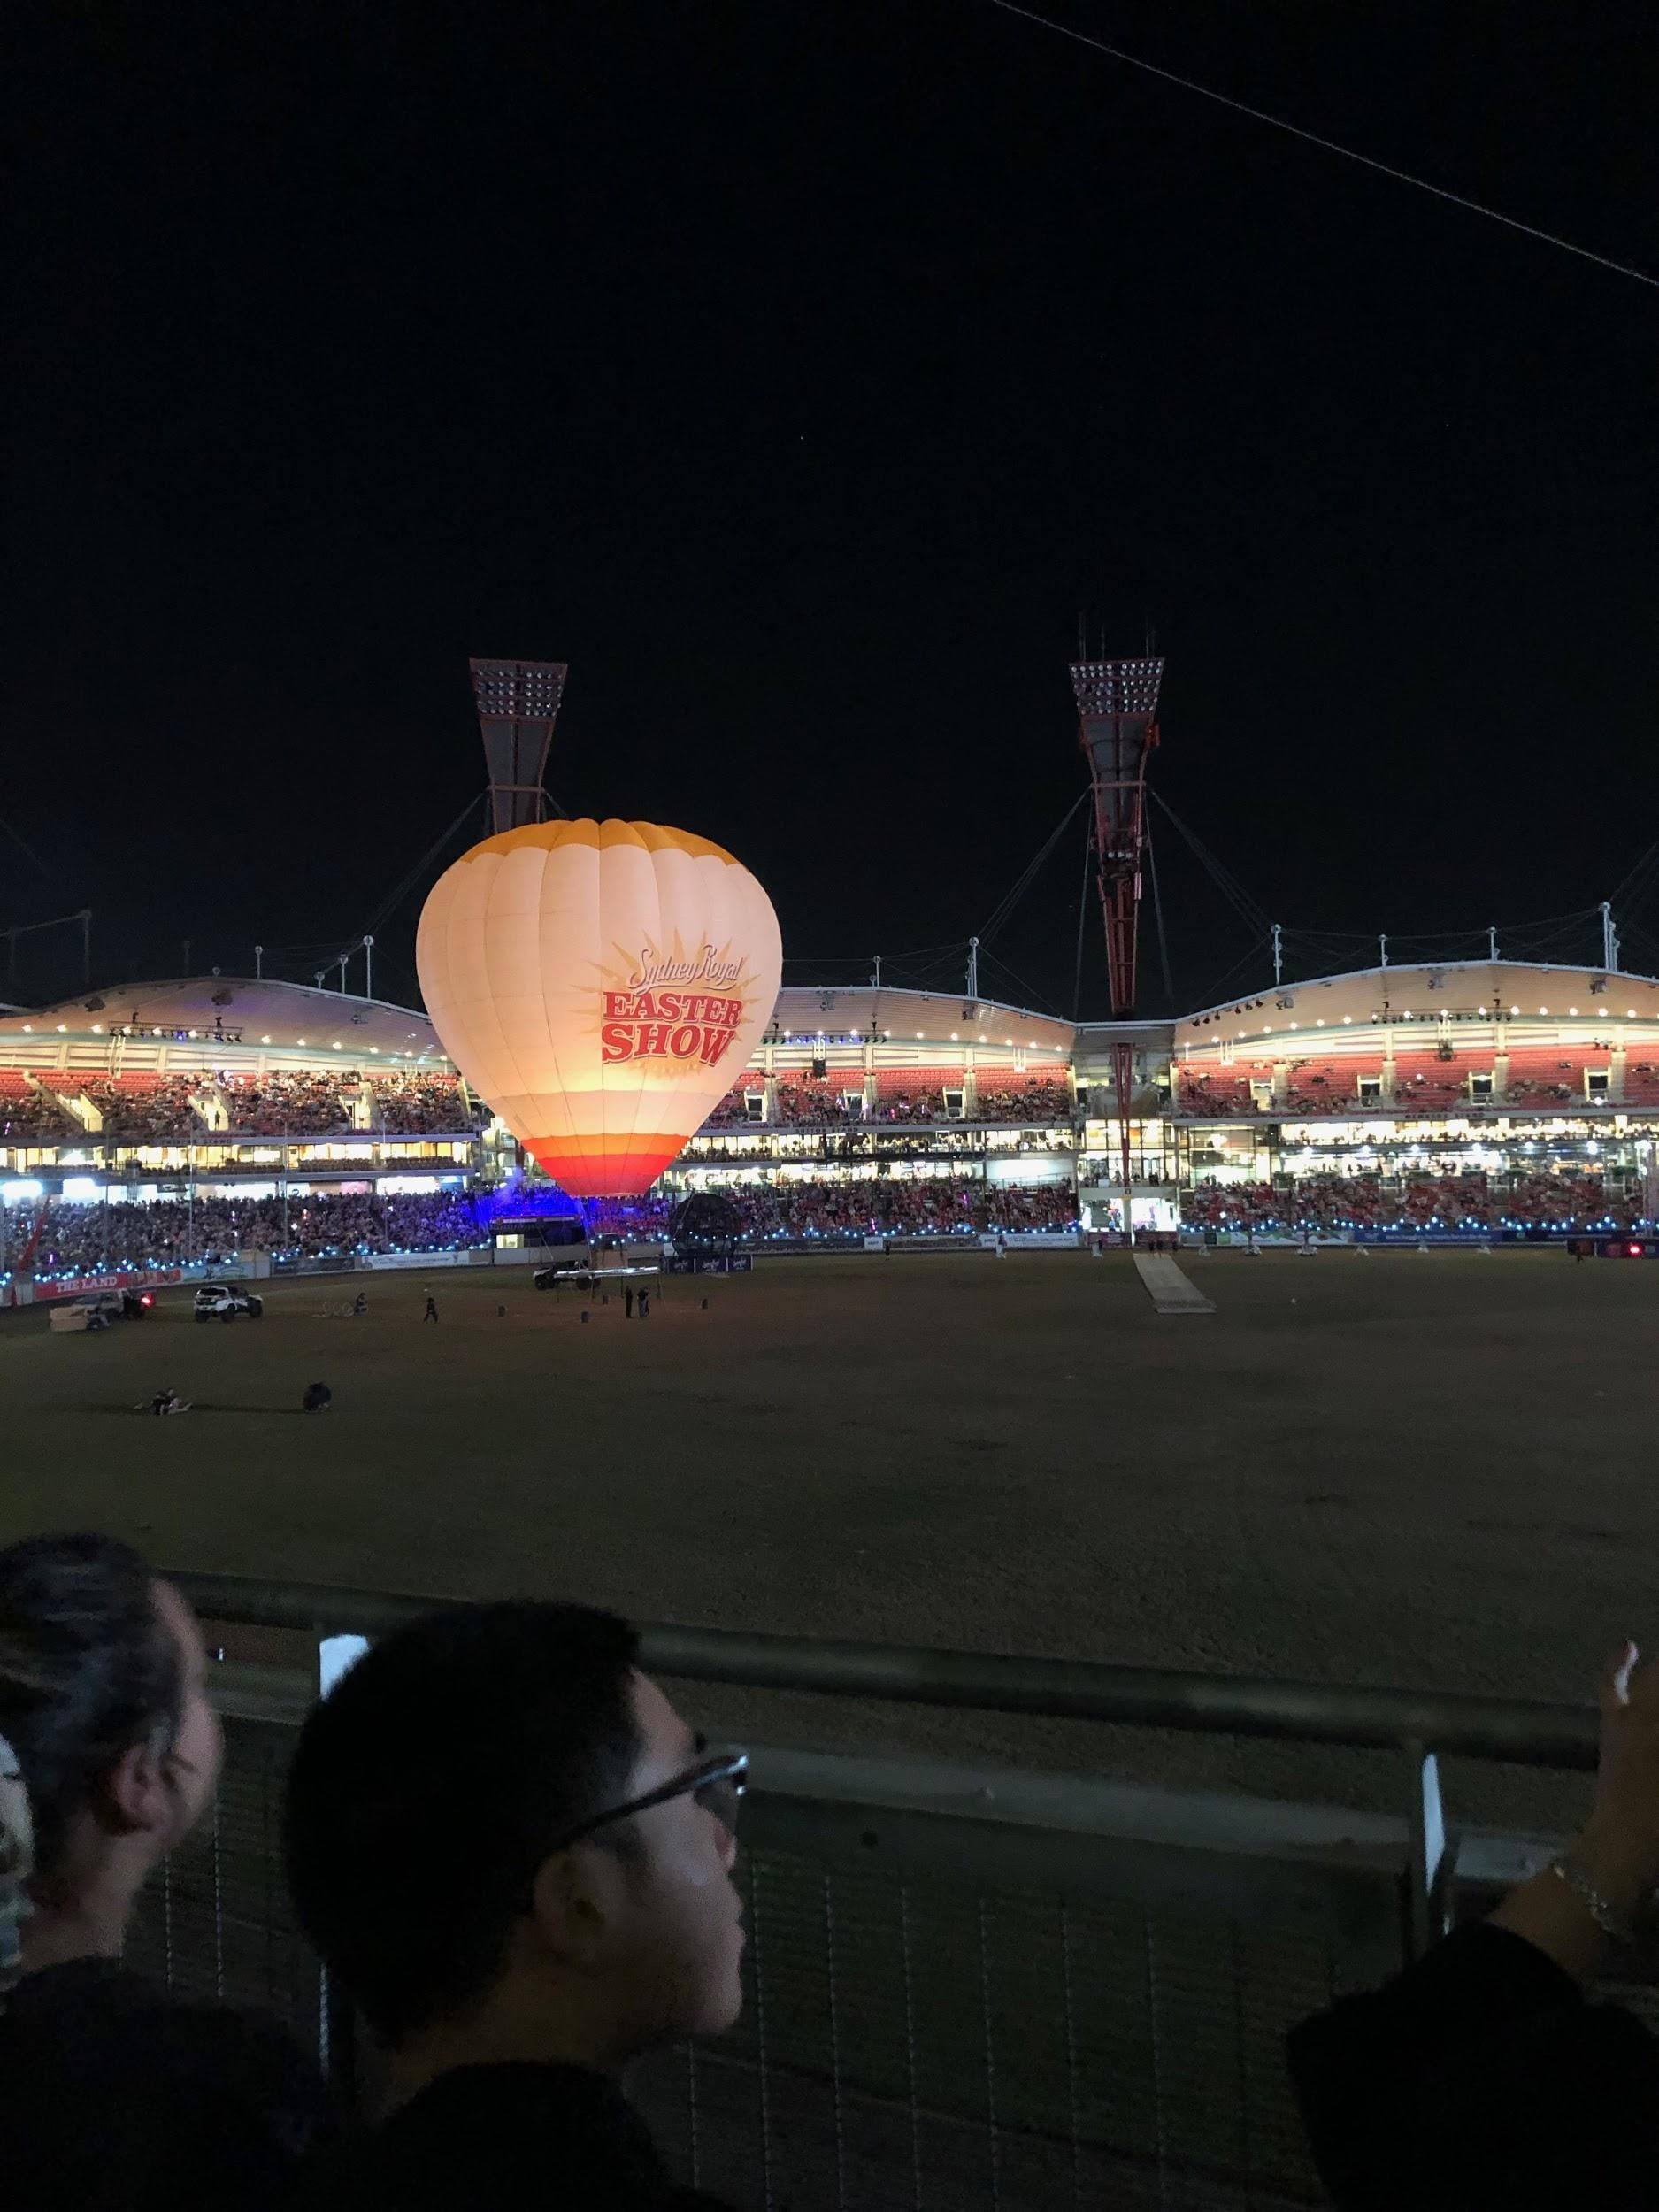 Hot air balloon on grass in stadium at night with bleachers and lights in background